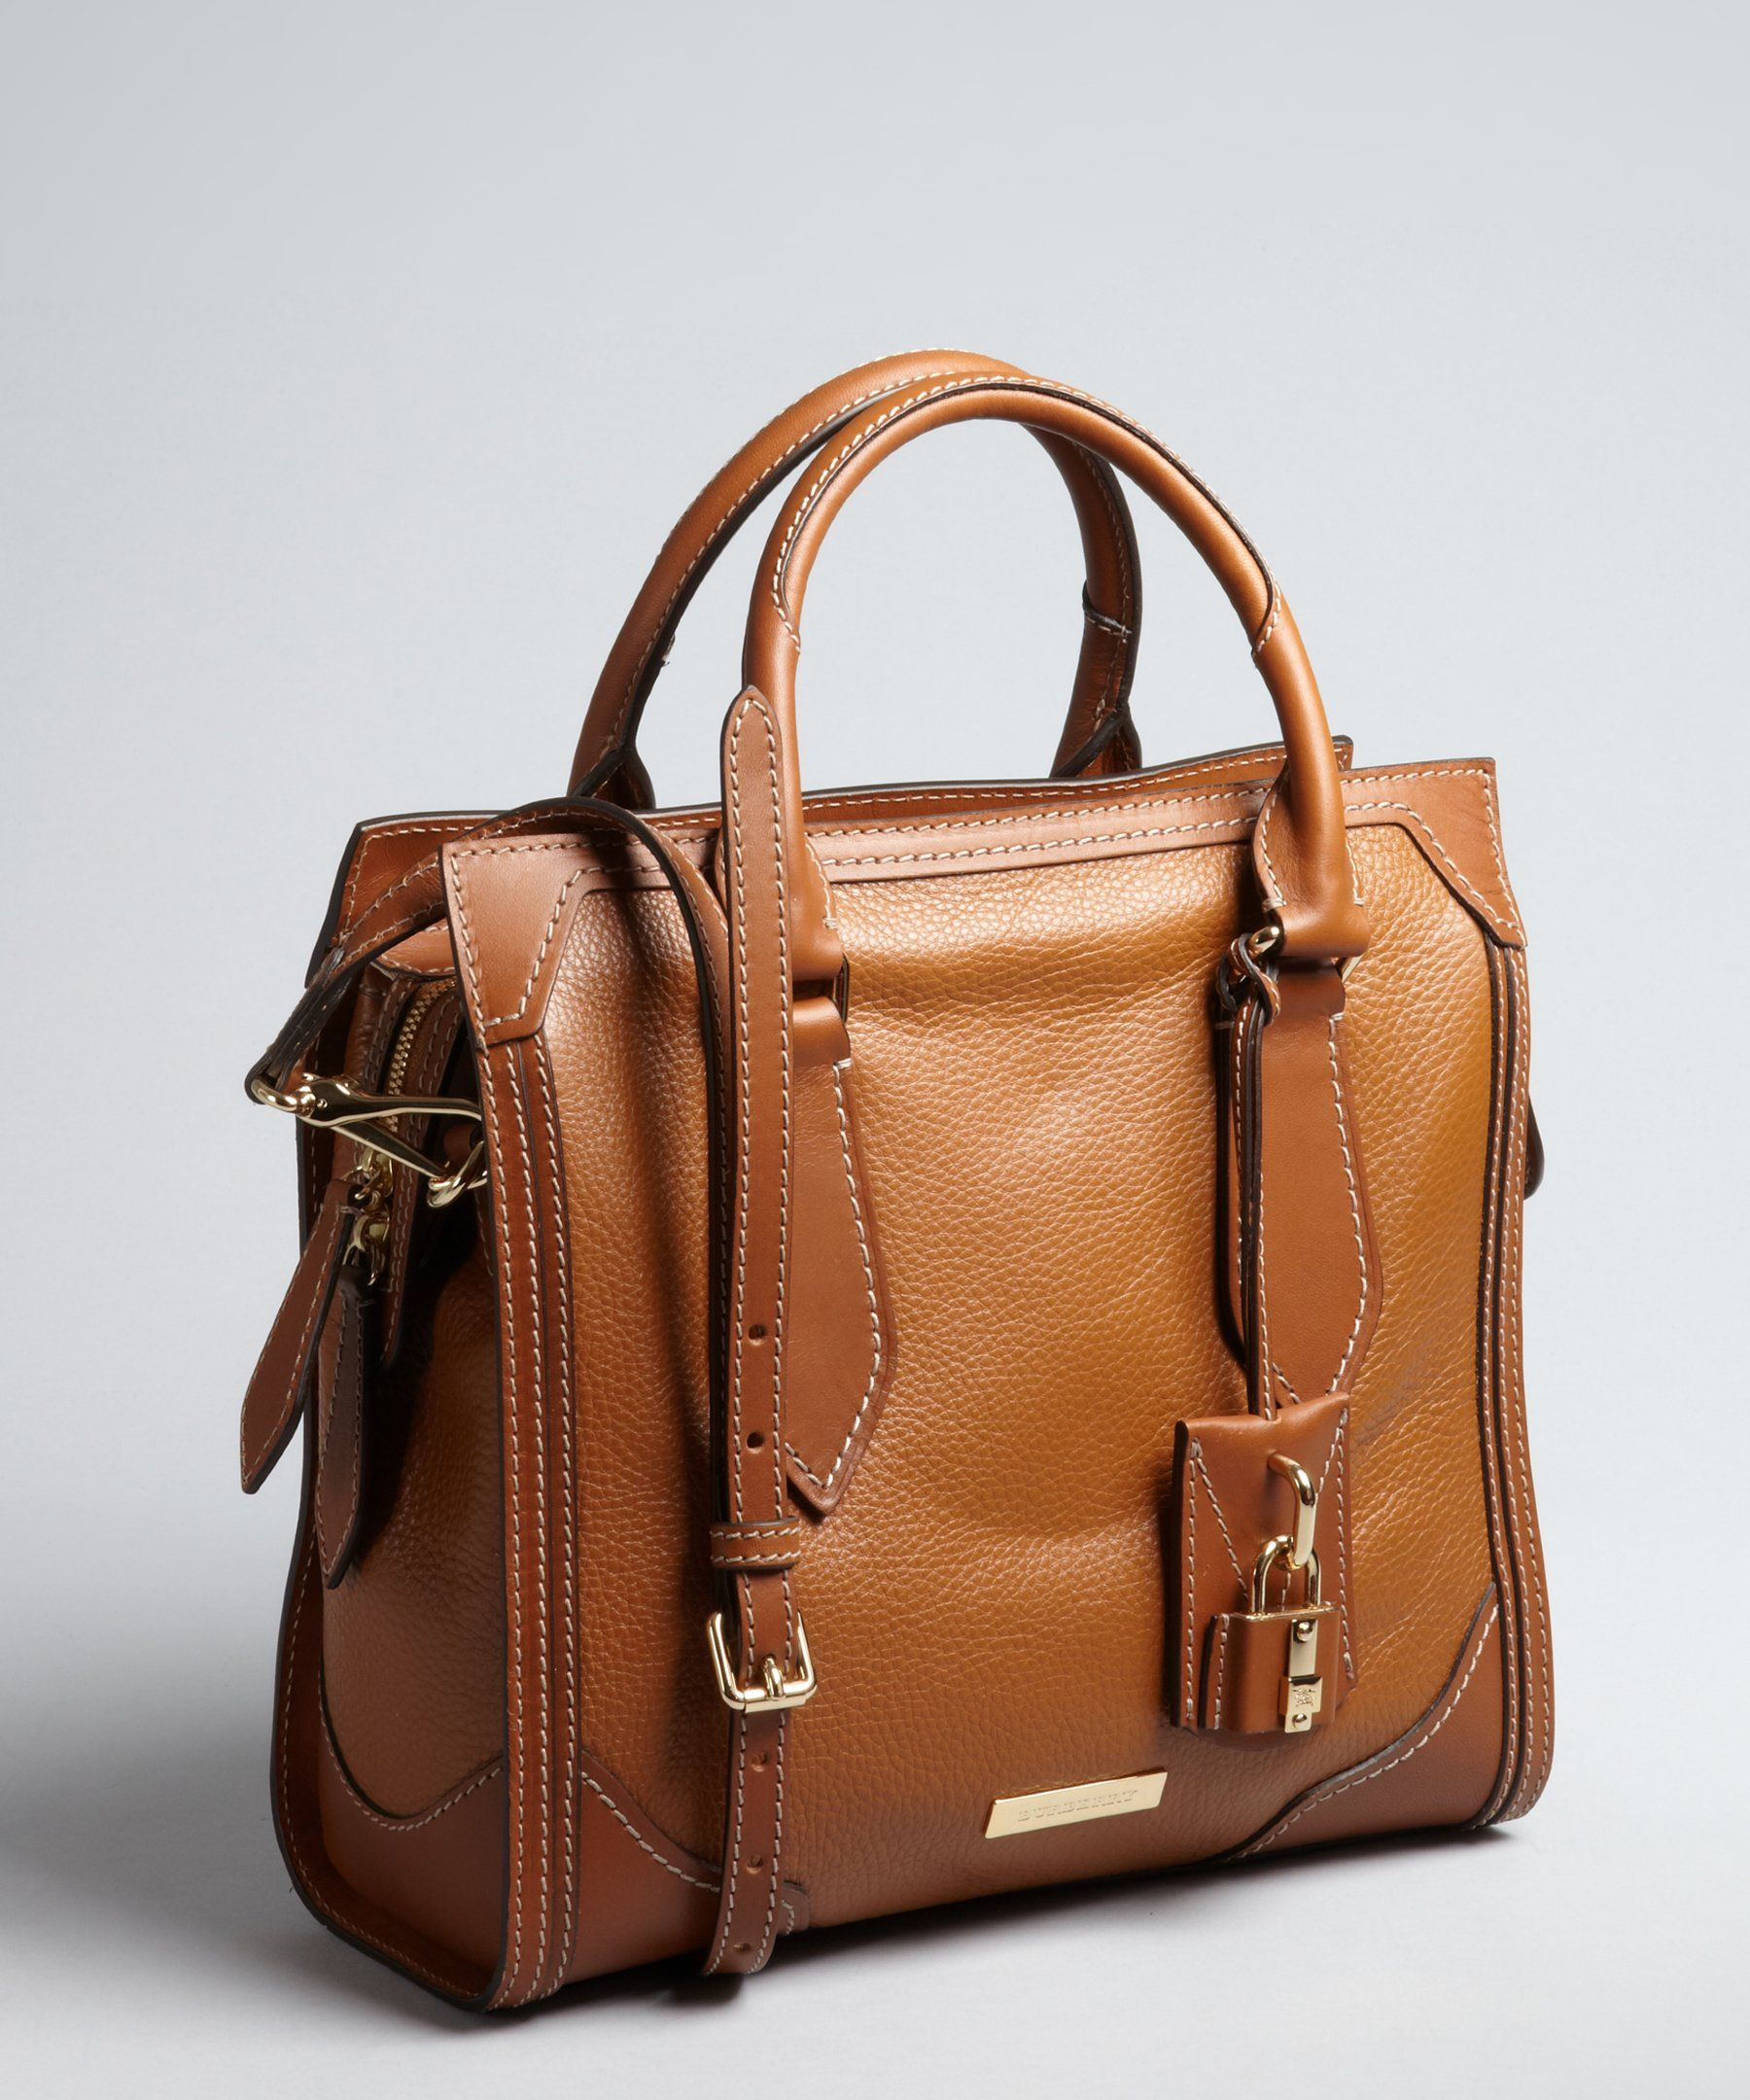 Burberry tan grained leather square convertible satchel | BLUEFLY up to 70% off designer brands